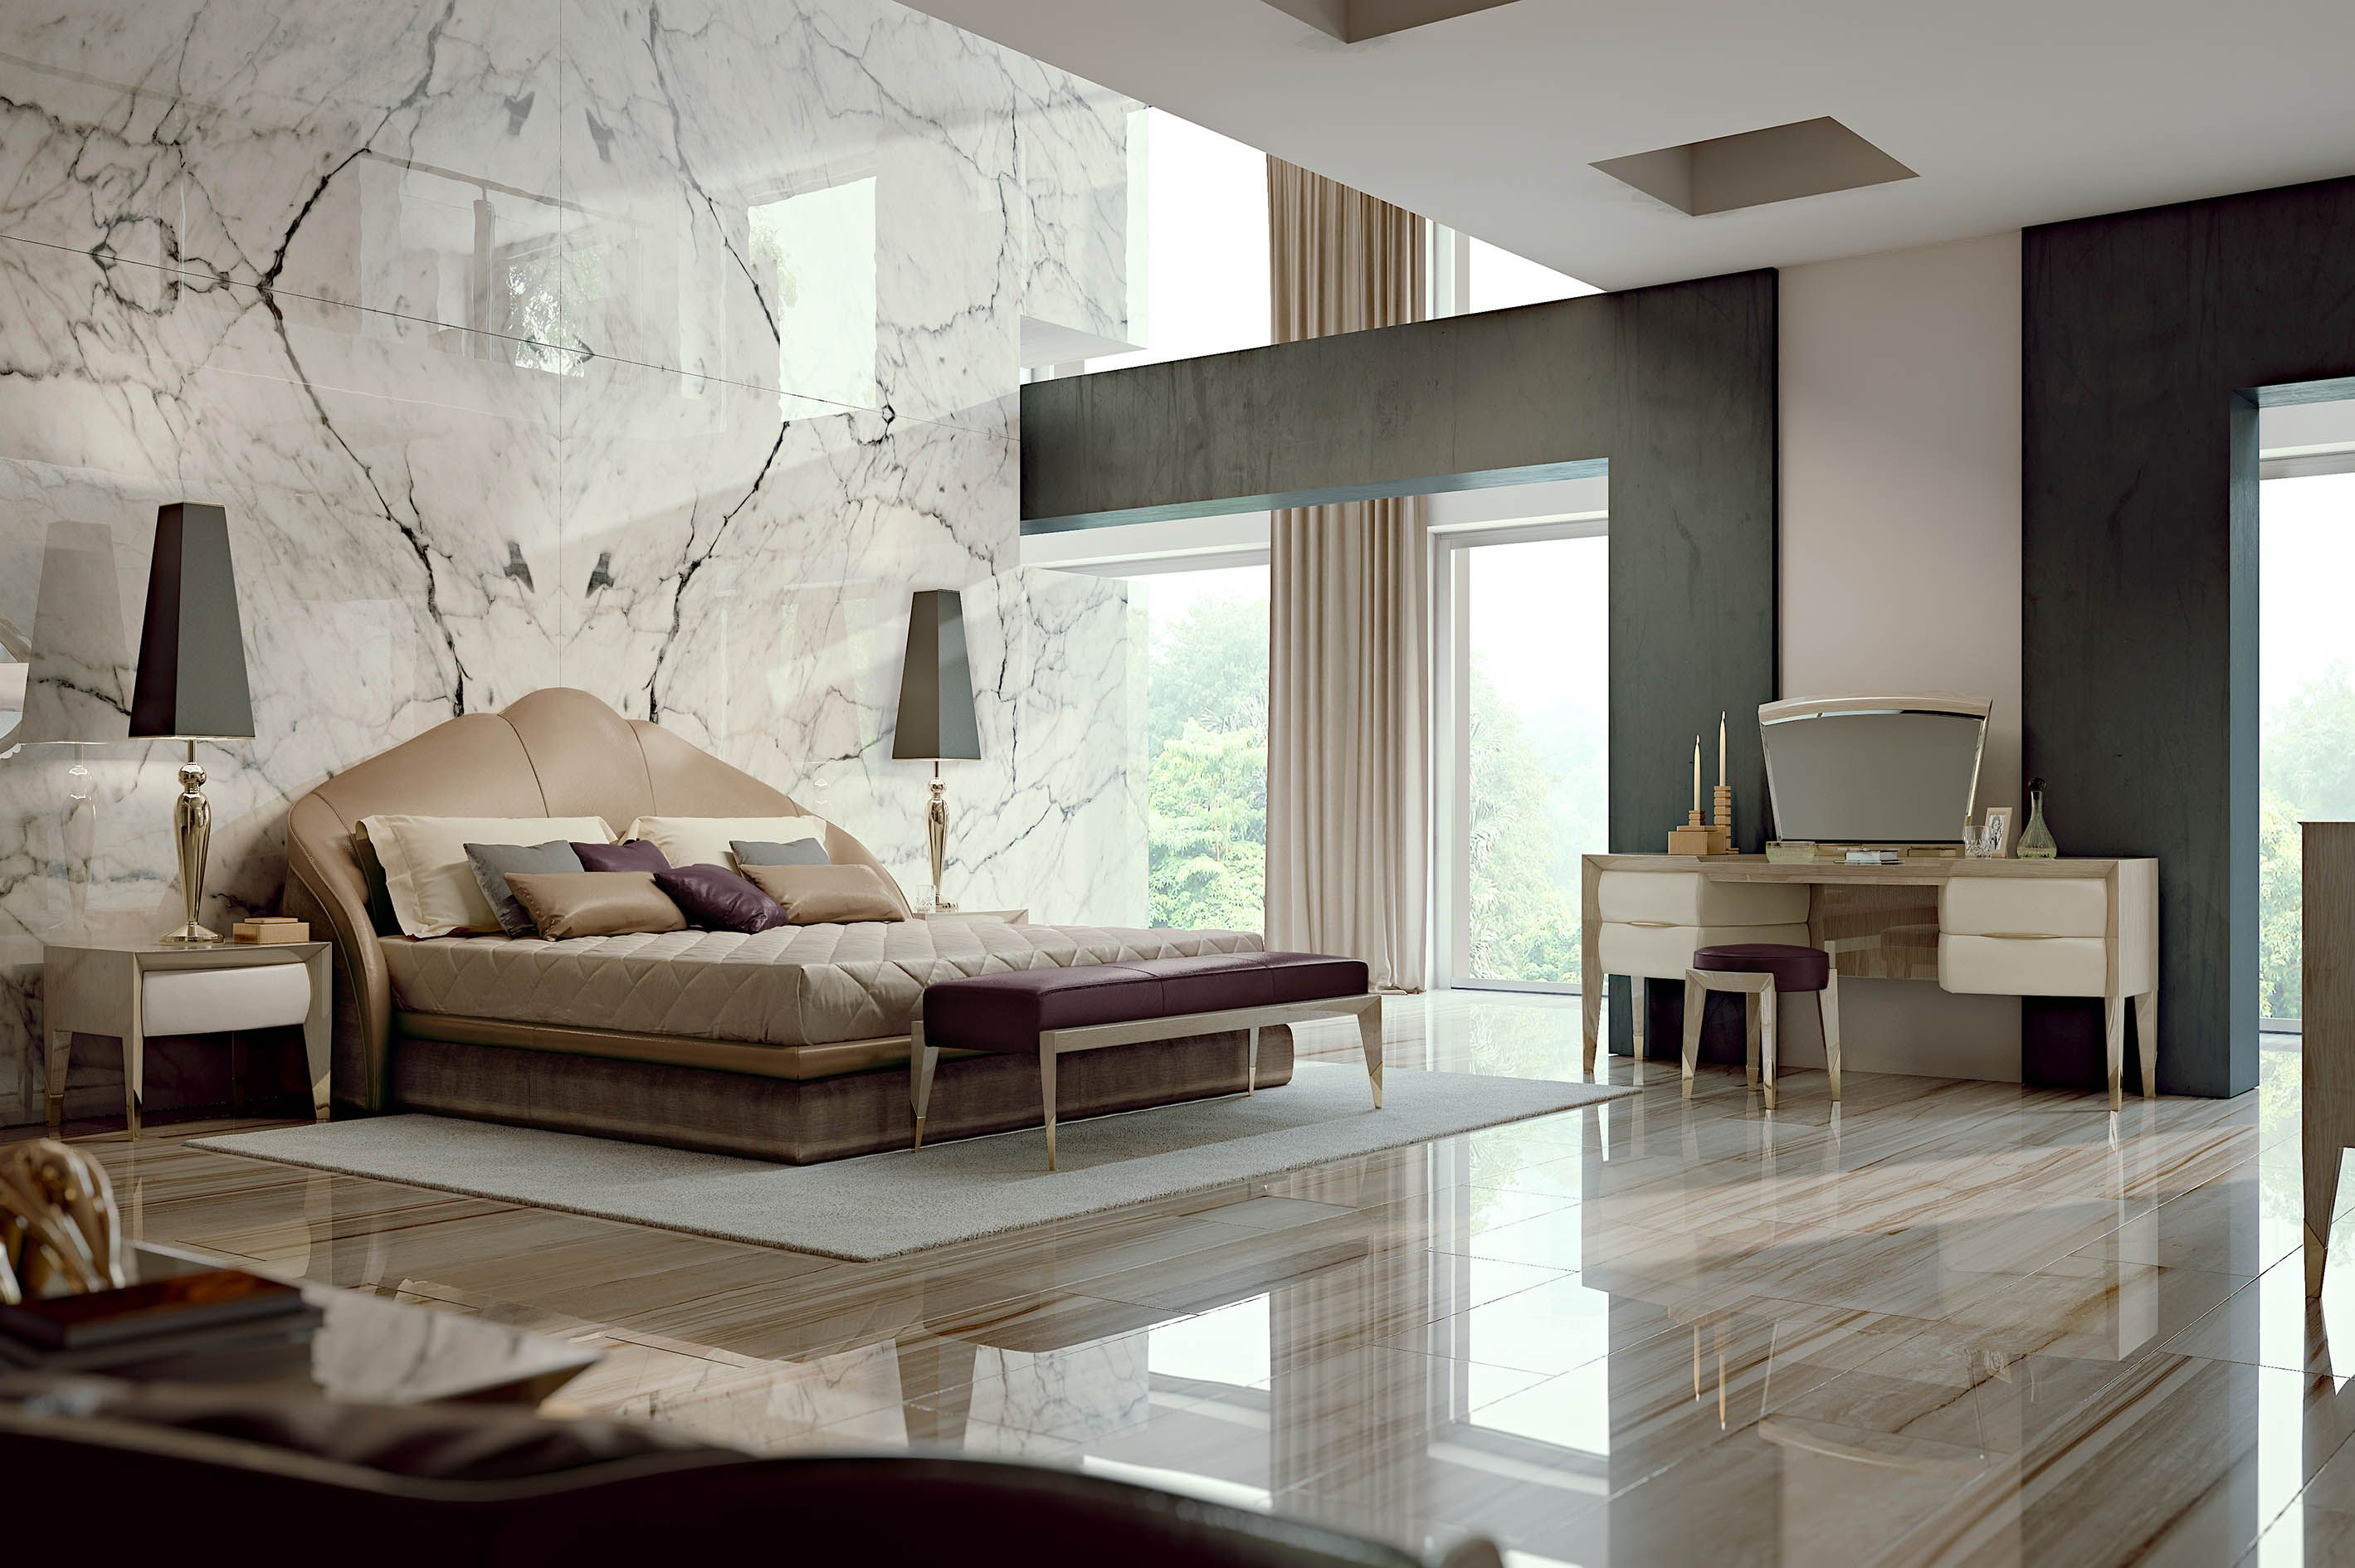 Orion bedroom italian luxury design bedroom for Bedroom ideas luxury